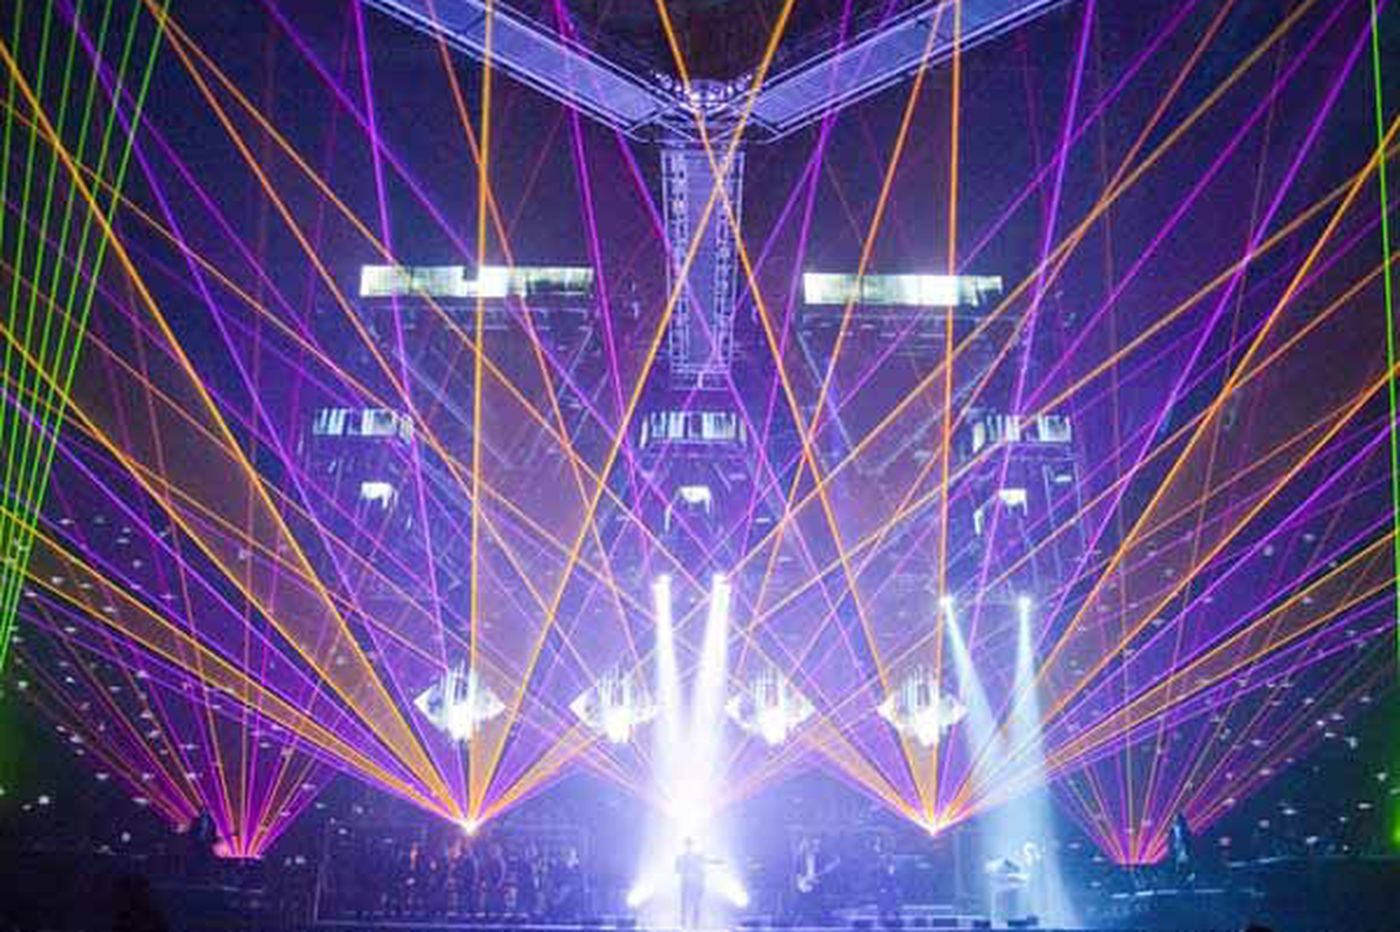 Trans-Siberian Orchestra offers an over-the-top take on Christmas